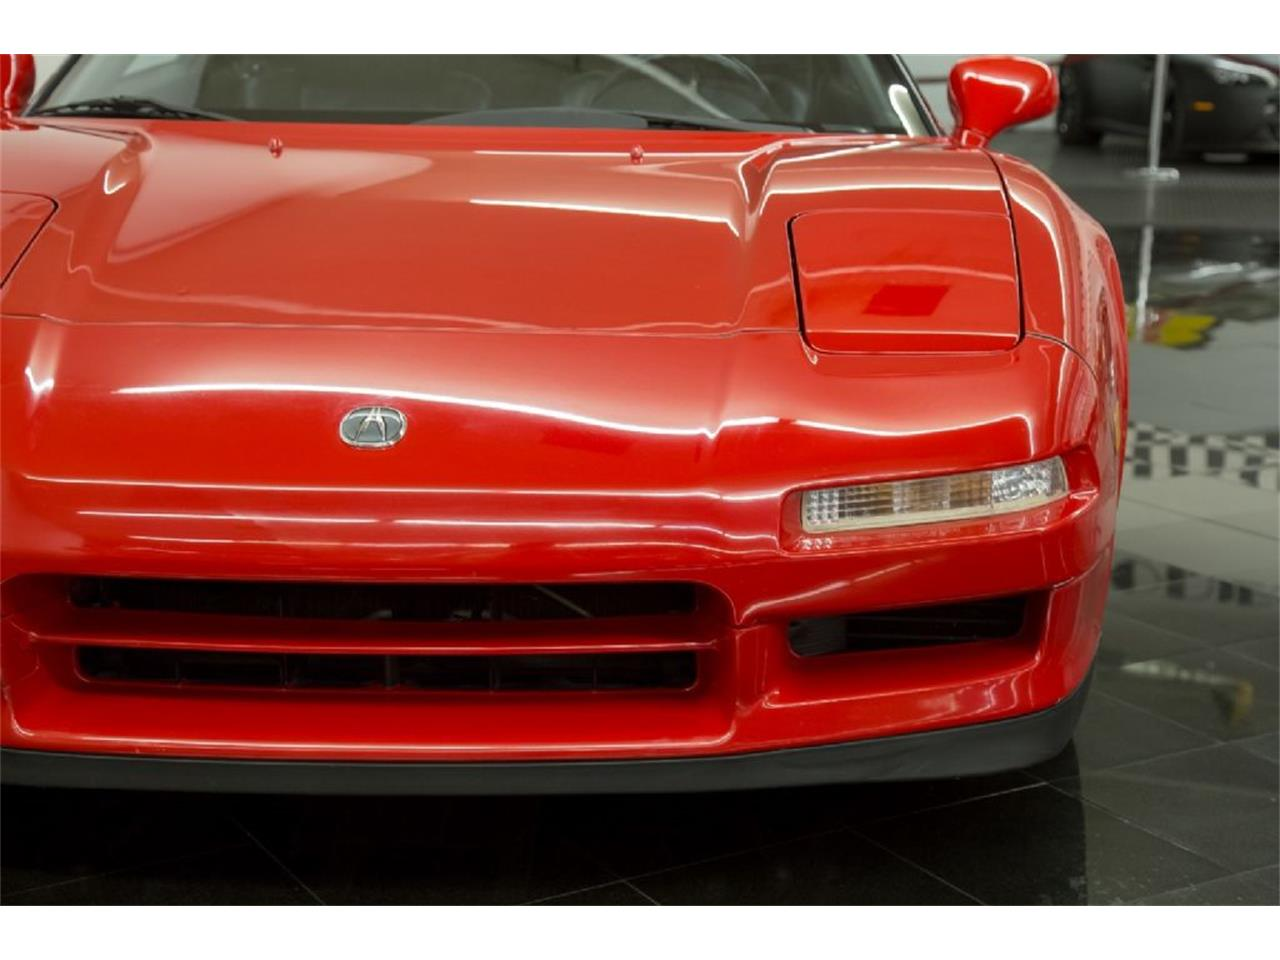 Acura Dealers St Louis >> 1994 Acura NSX for Sale | ClassicCars.com | CC-1145506